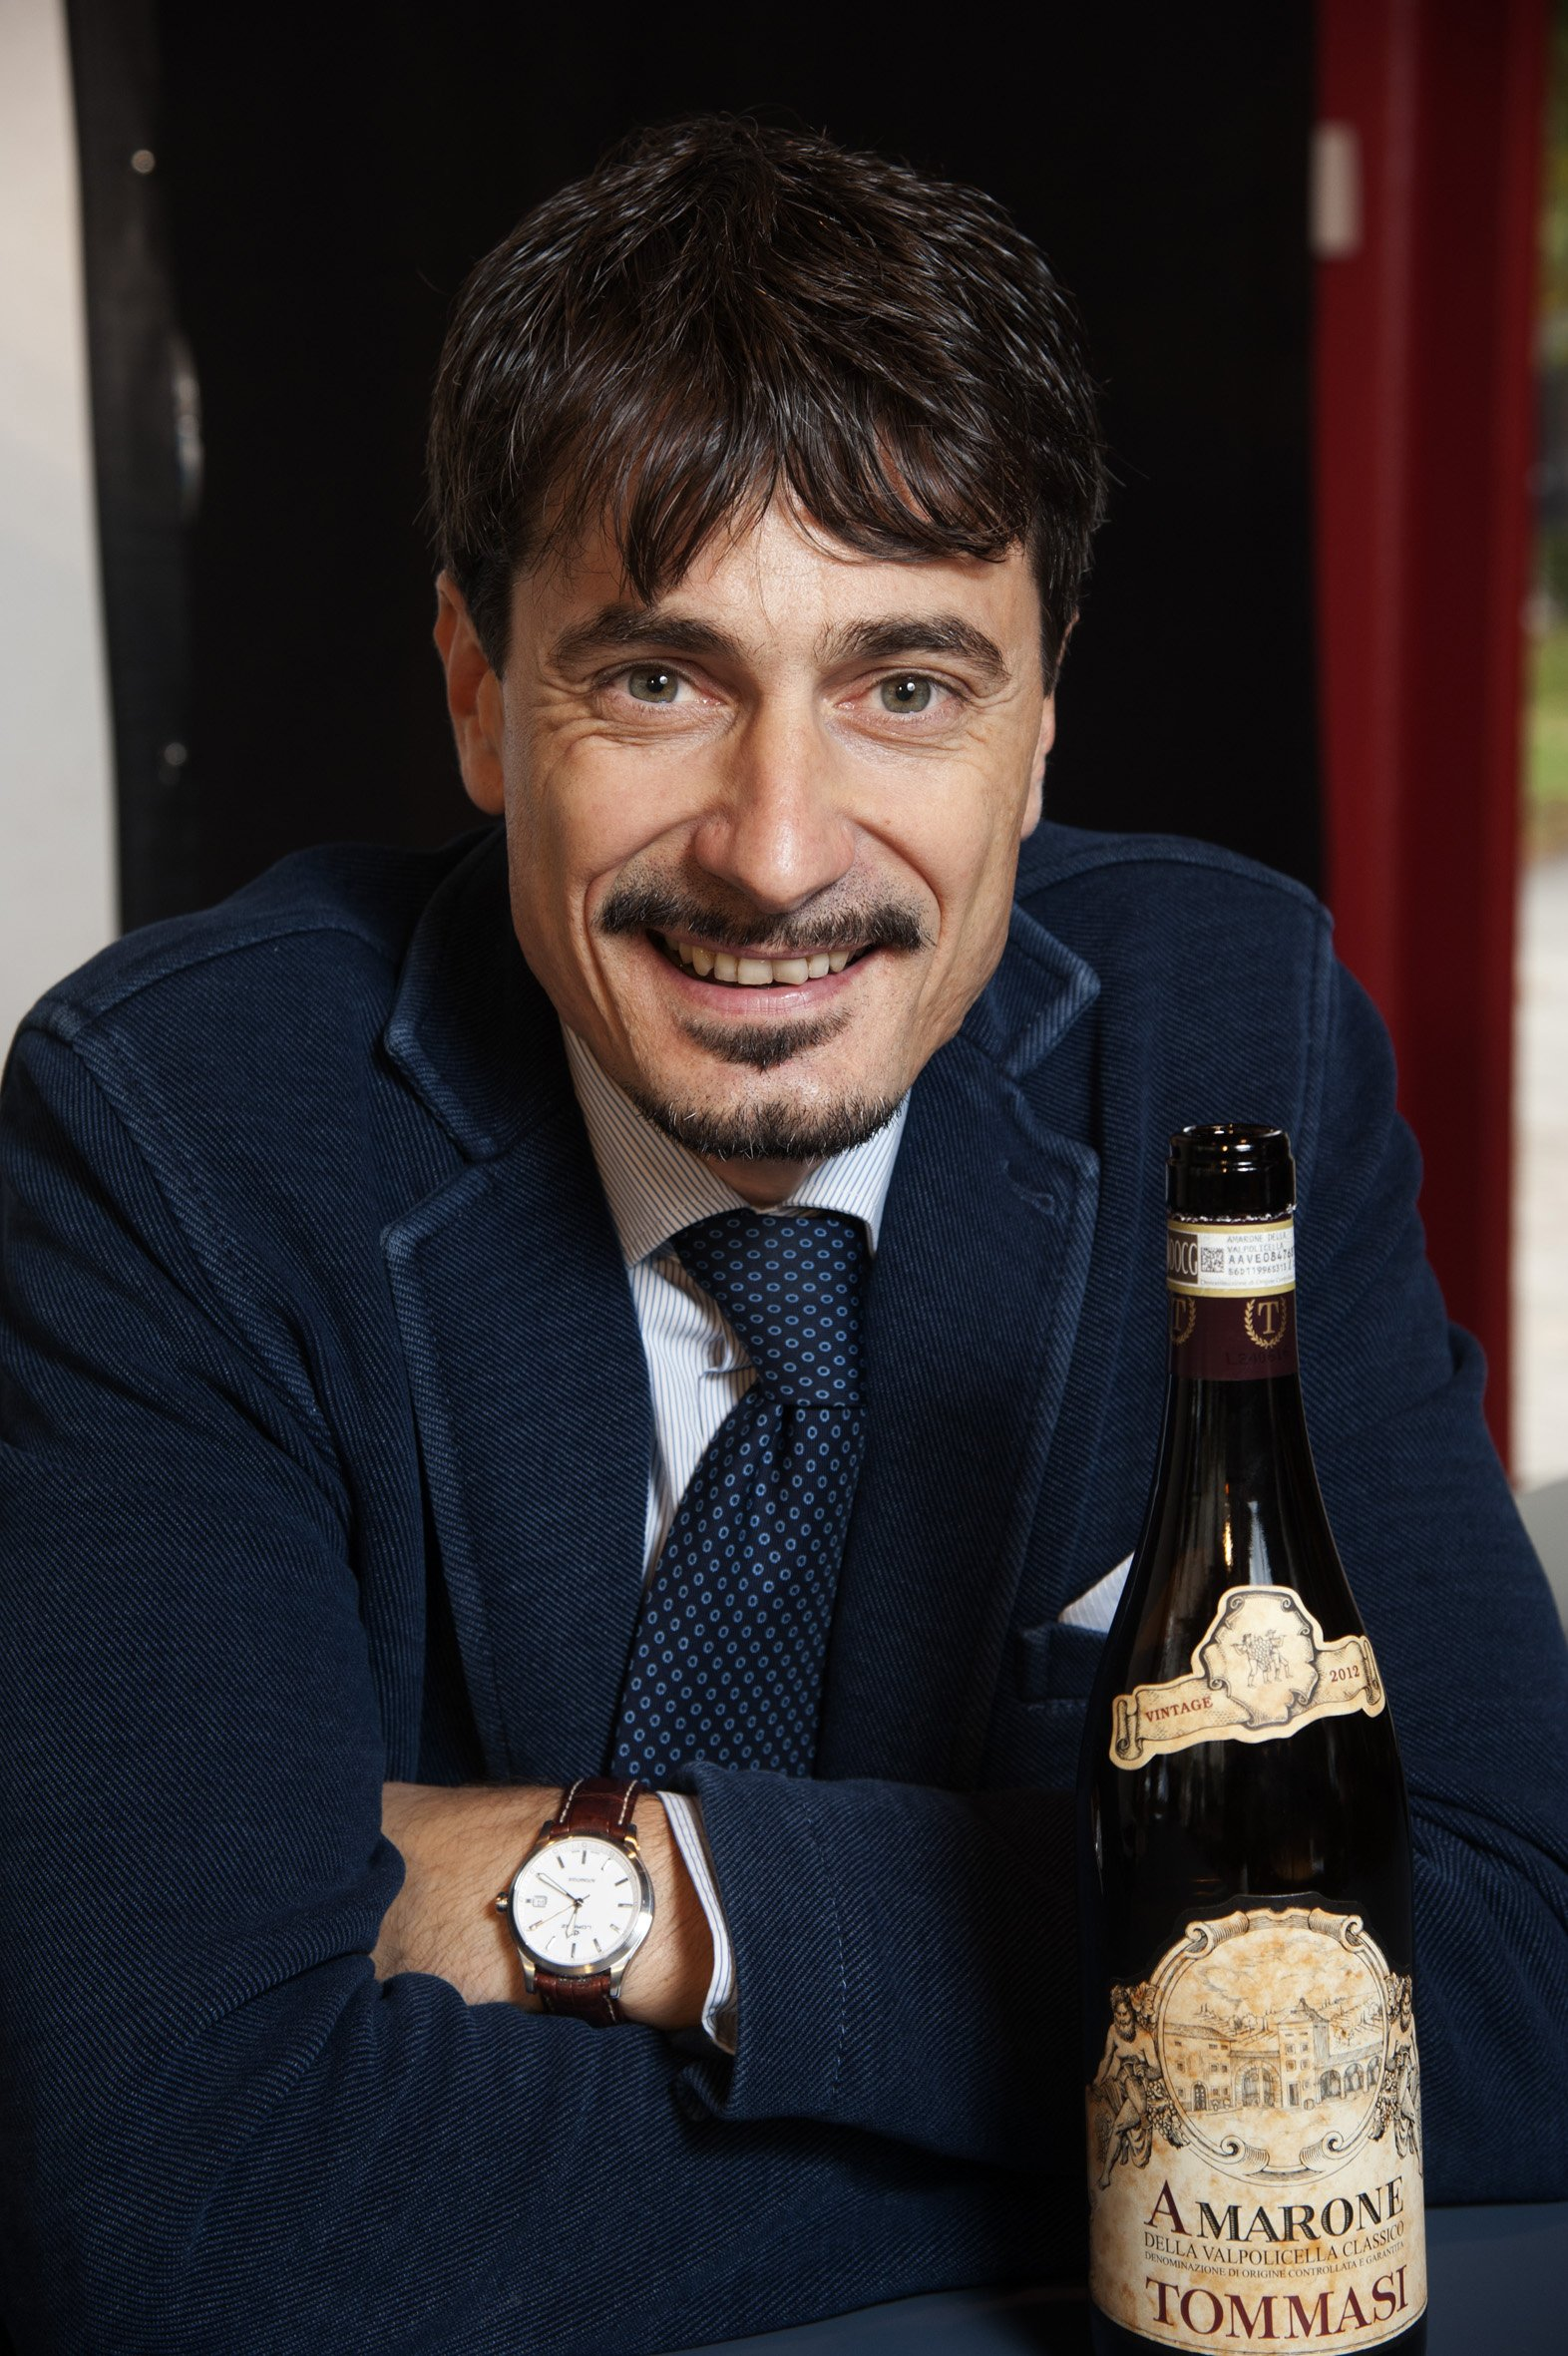 Famiglie dell'Amarone d'Arte in Stockholm 161014 Pierangelo Tommasi ©Photo:Claes Lofgren/winepictures.com